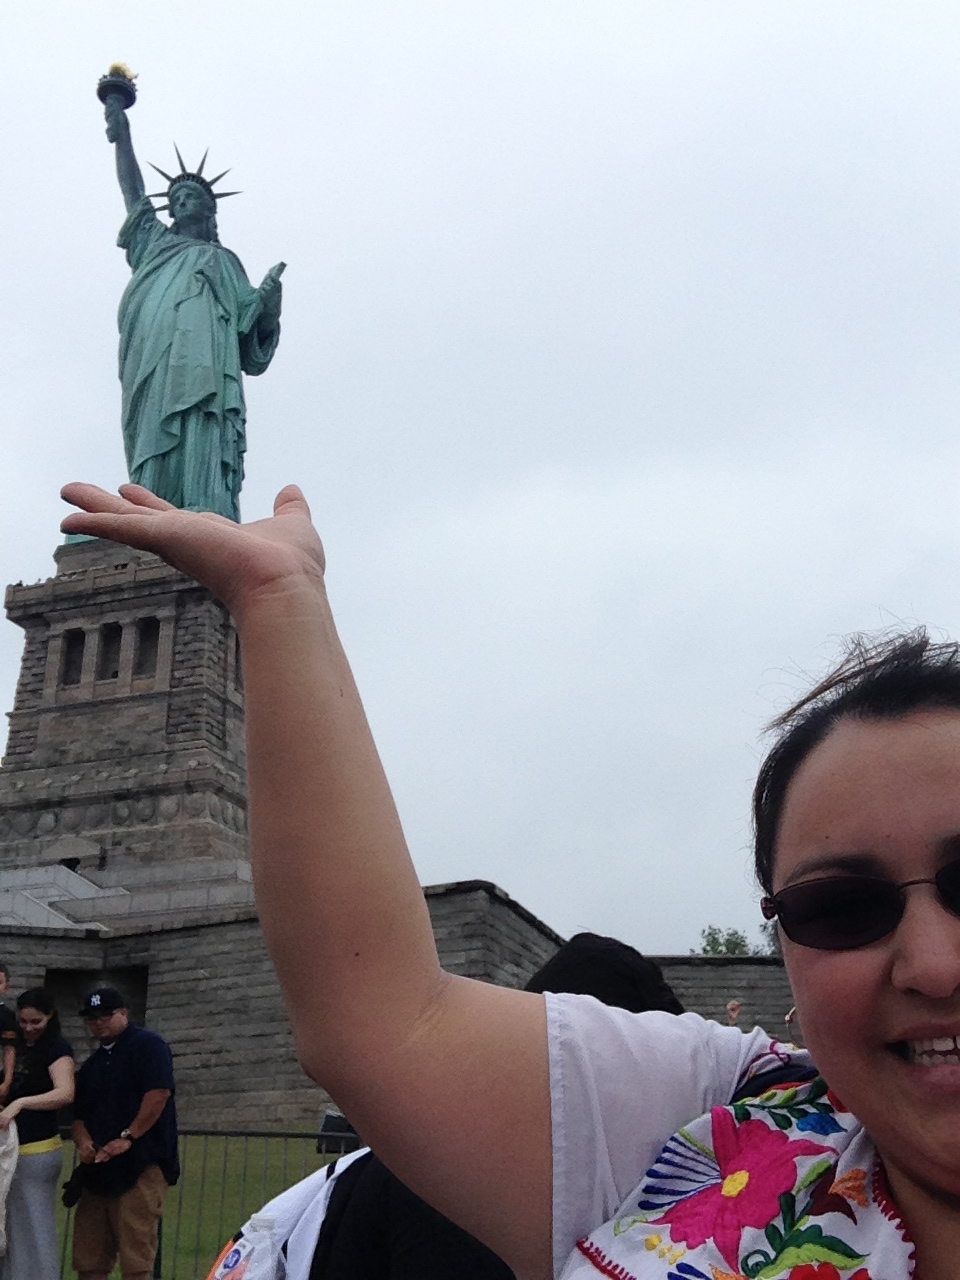 With Lady Liberty - New York City, 2014